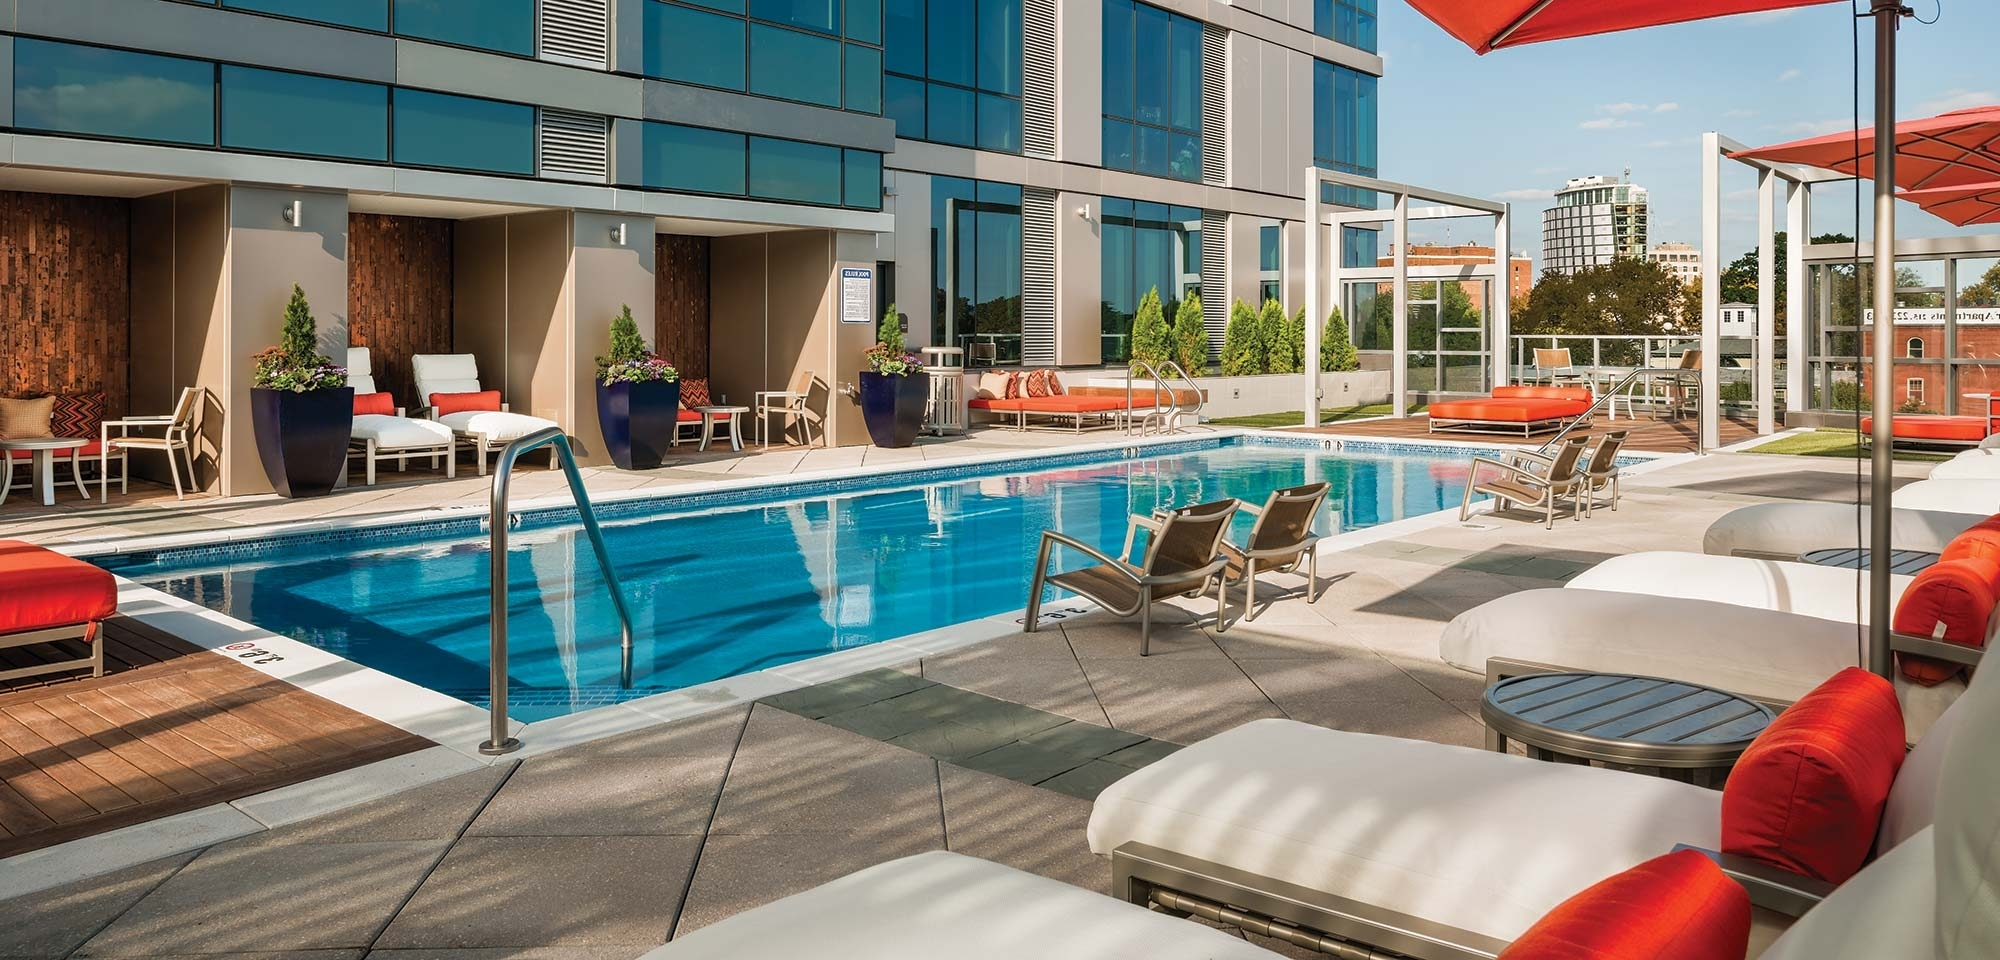 Hotel Pool Chaise Lounge Chairs With Well Liked Commercial Outdoor Furniture (View 8 of 15)